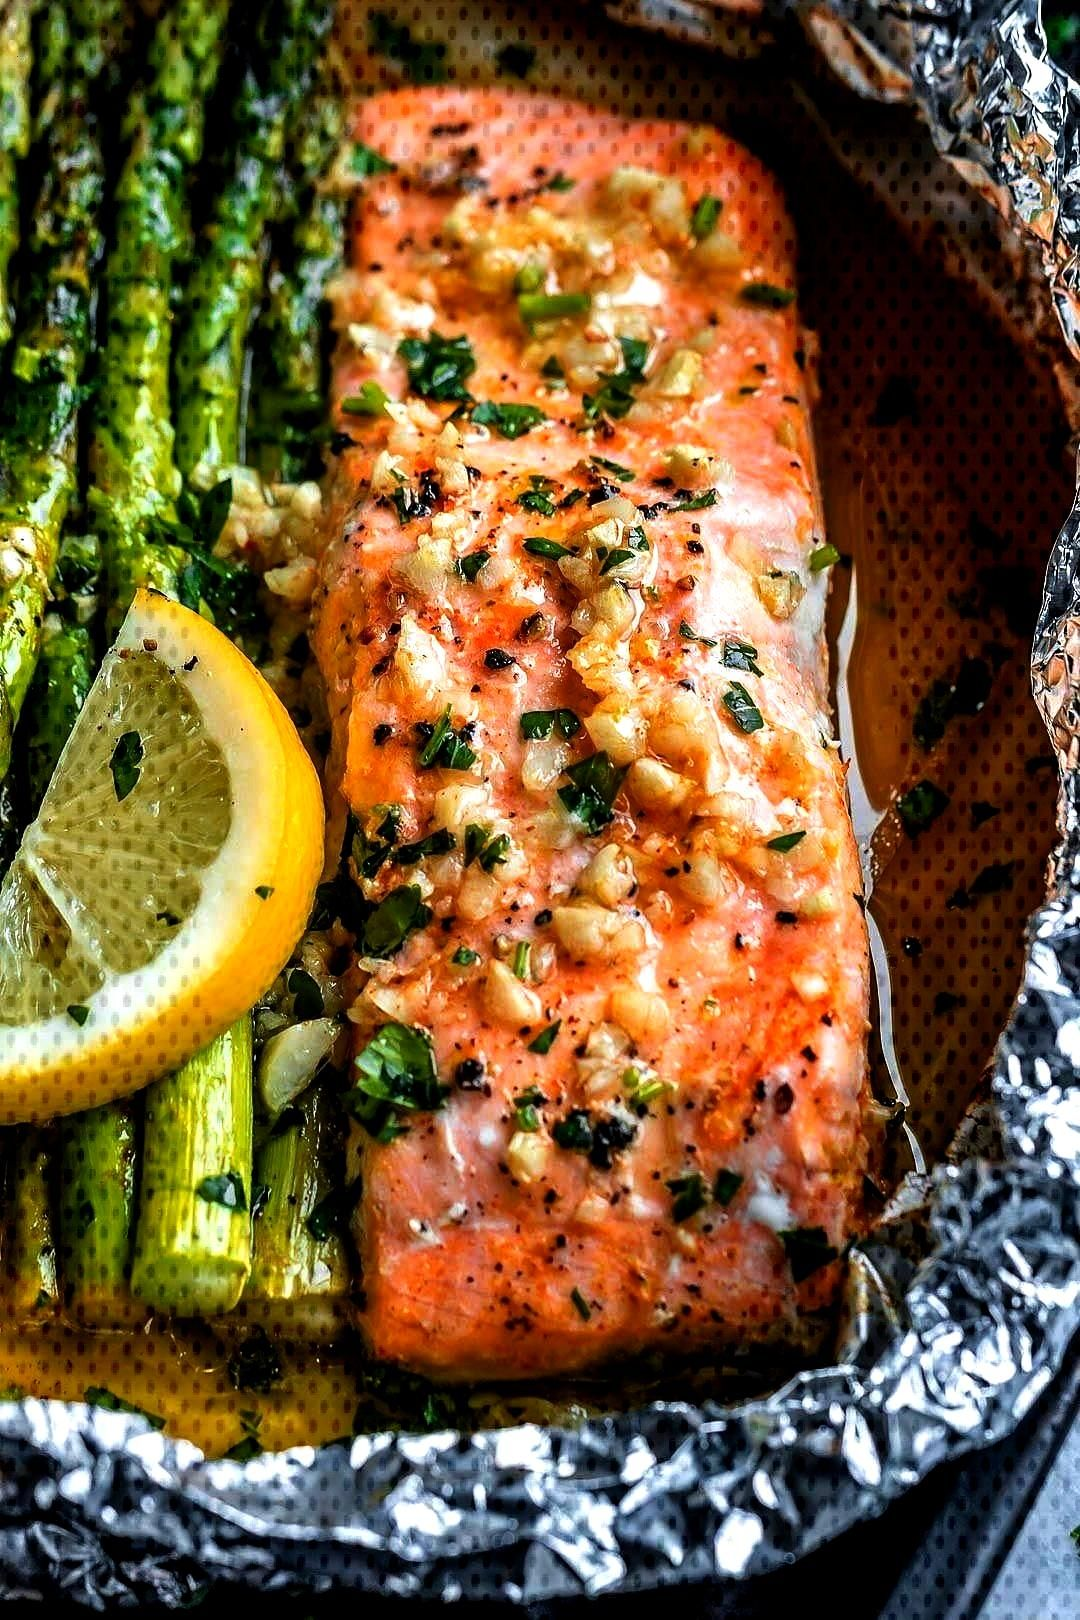 and Asparagus Foil Packs with Garlic Lemon Butter Sauce - My Blog - -Salmon and Asparagus Foil Pack